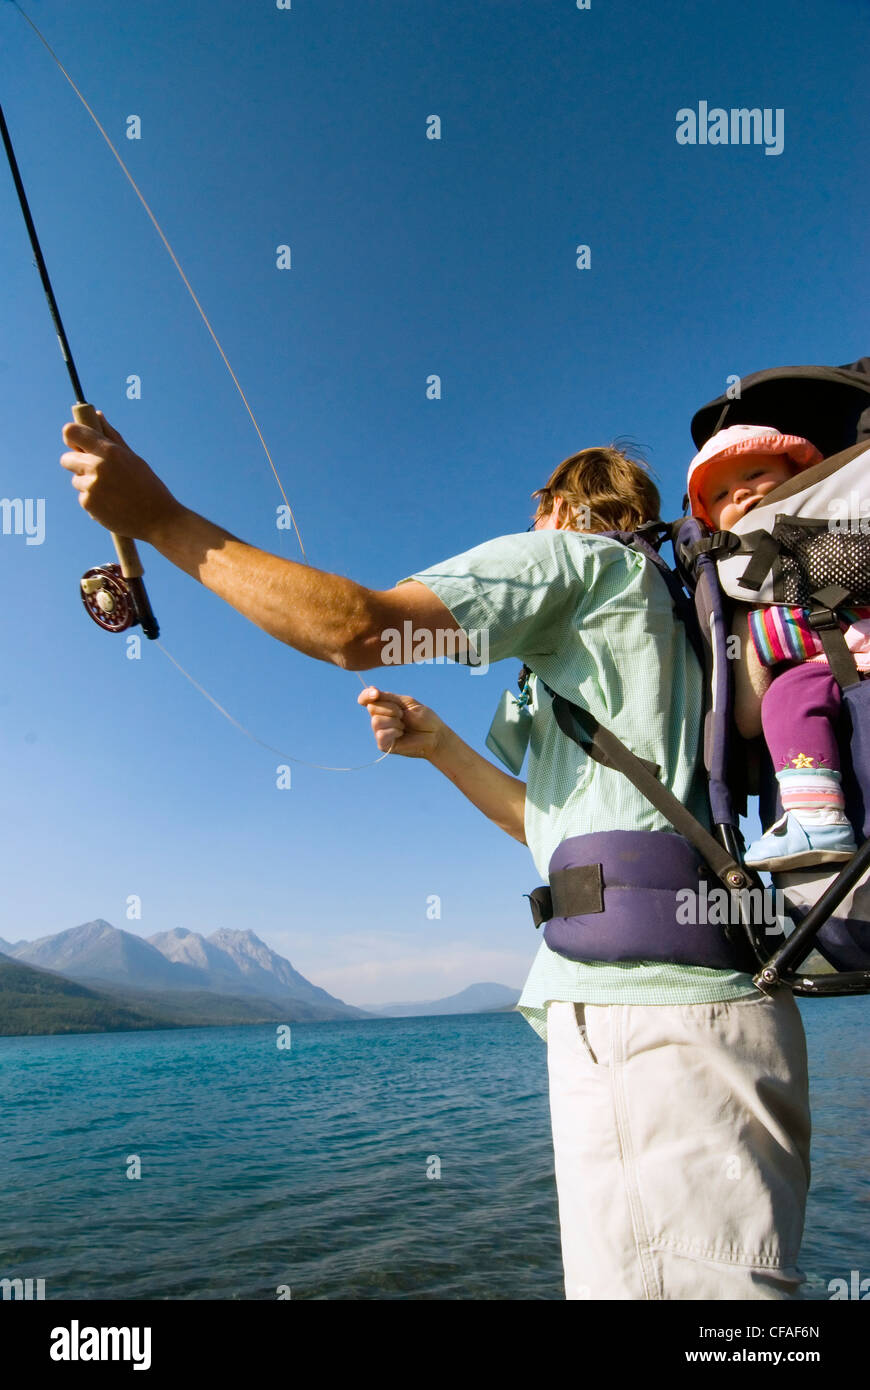 Fisherman father with daughter in child-carrier backpack, fly-fishing for trout, Tatlayoko Lake, British Columbia, - Stock Image